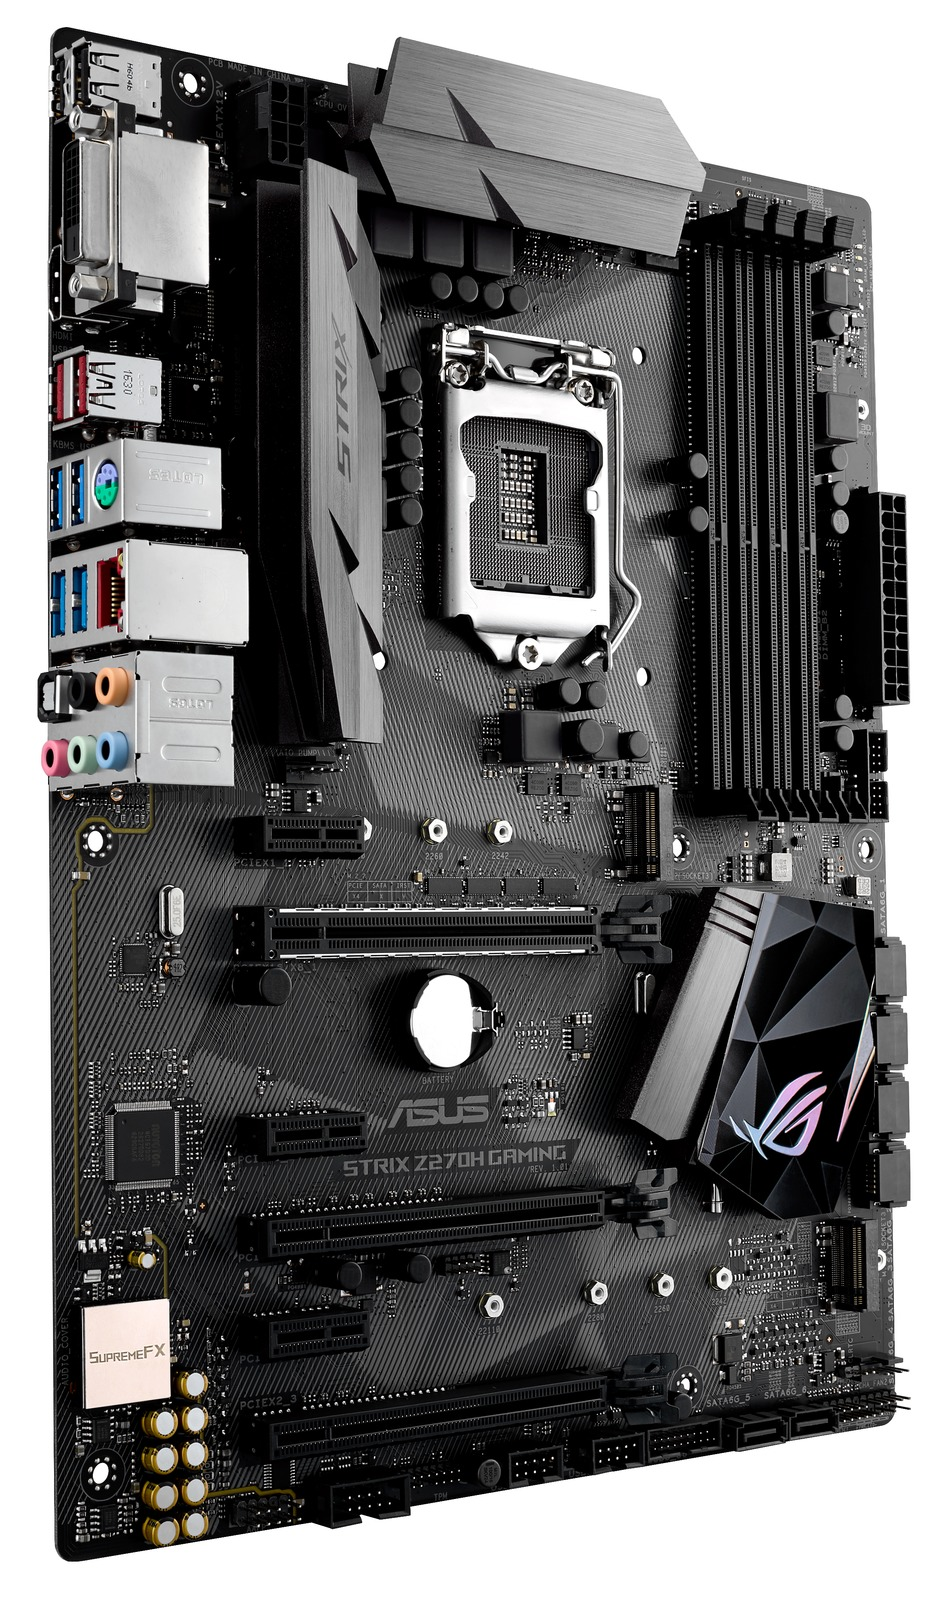 Asus Rog Strix Z270h Gaming Motherboard At Mighty Ape Nz